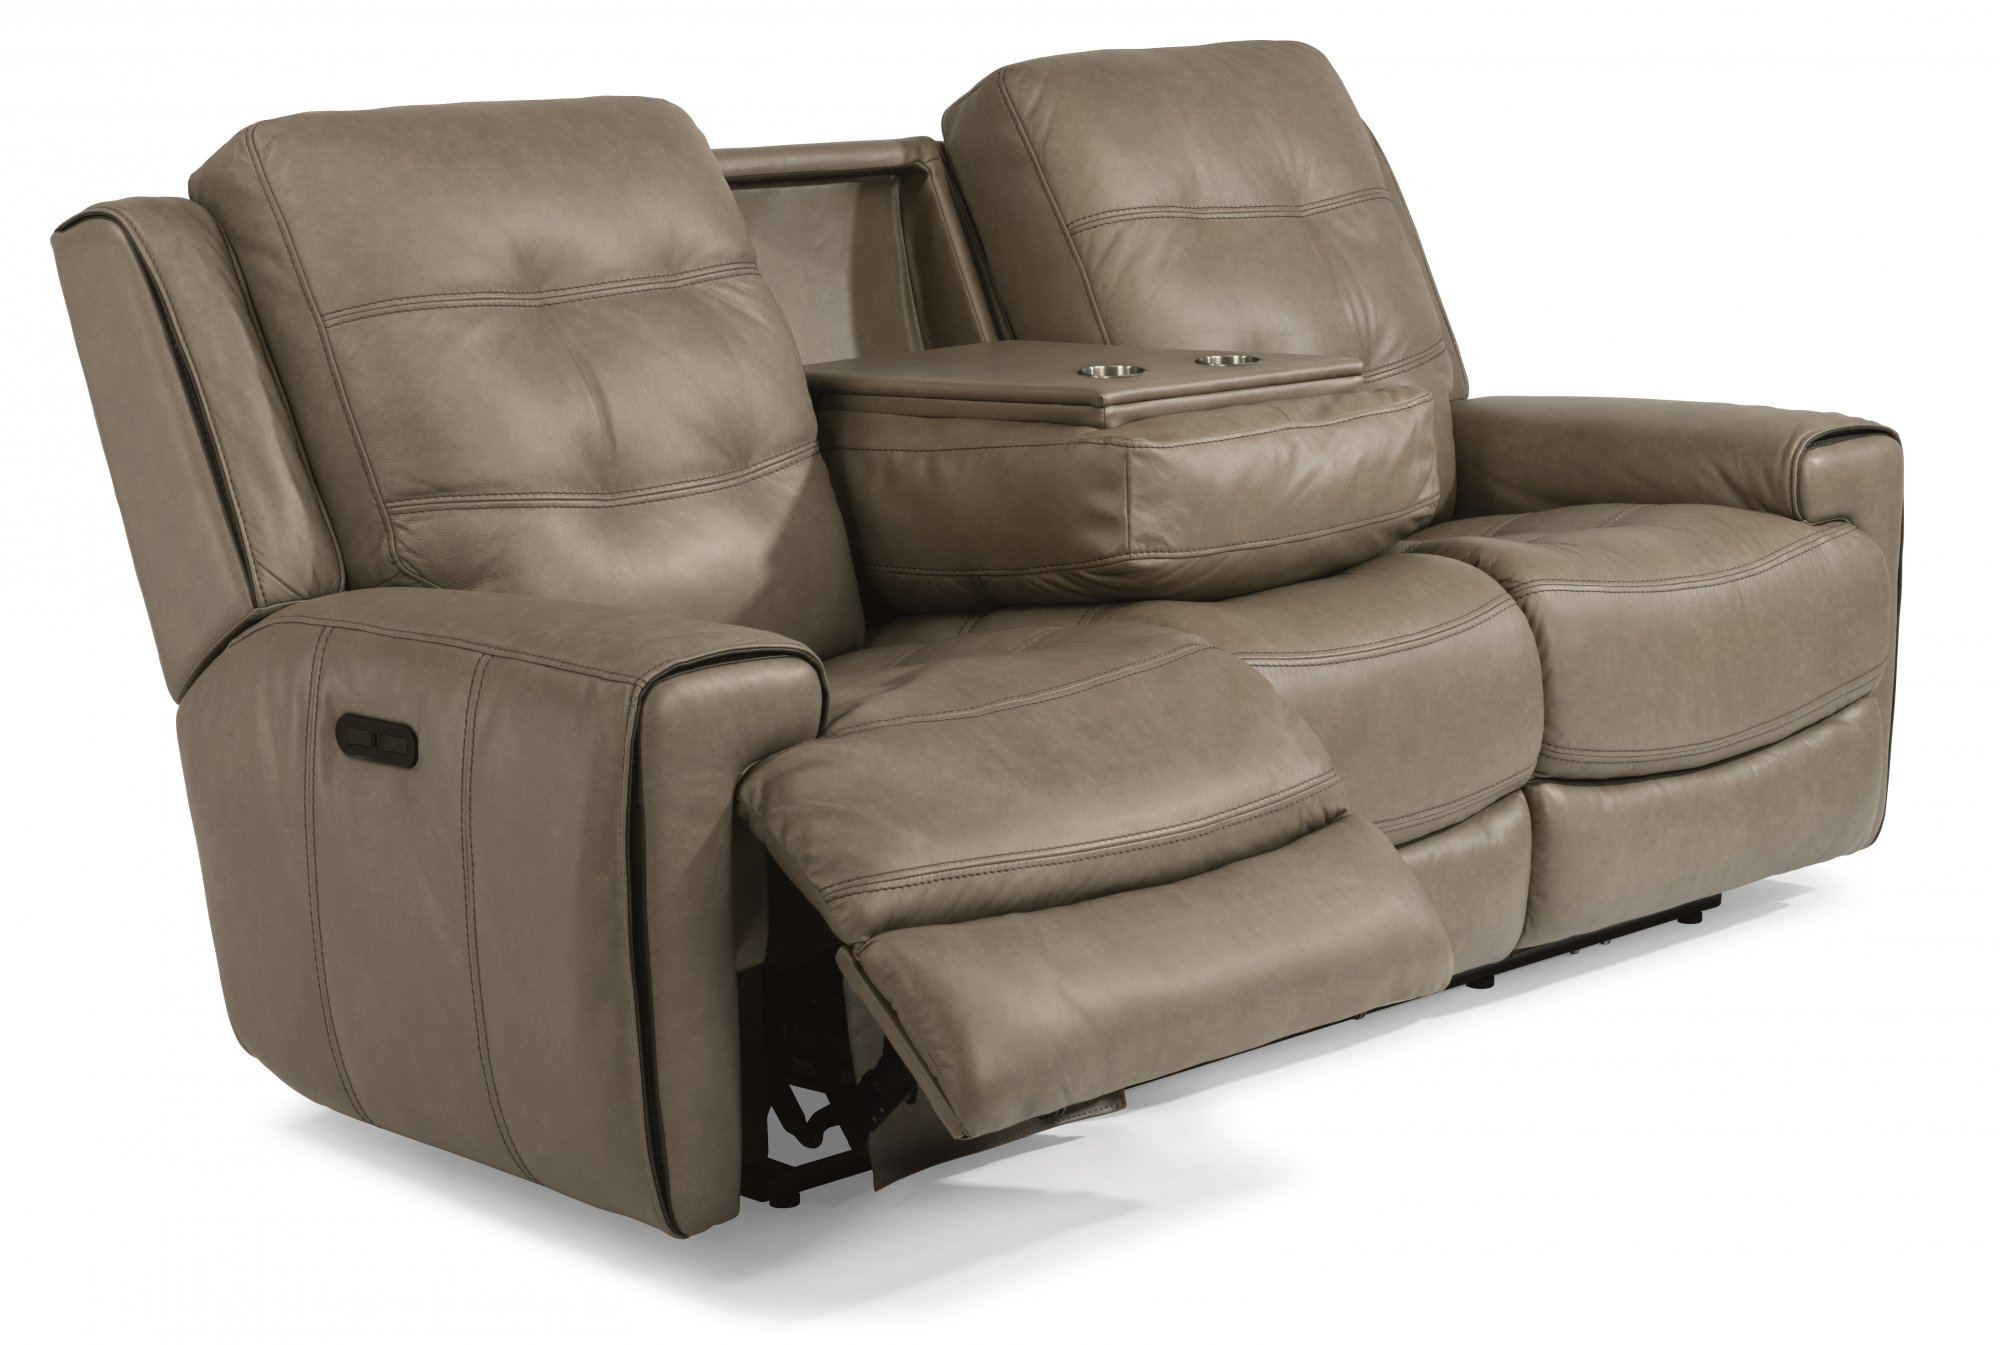 sofa recliner share via email download a high-resolution image QRMLWRG